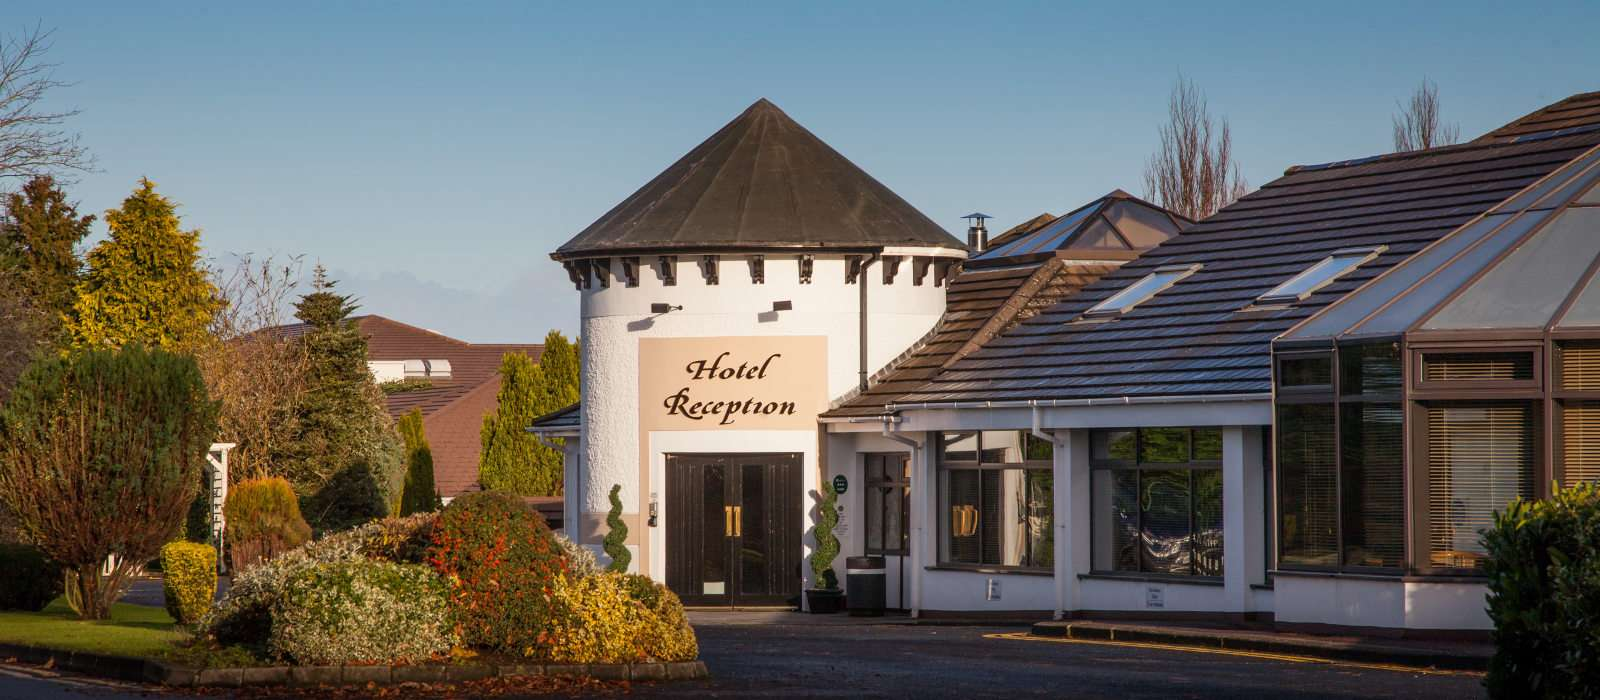 Lodge Hotel Coleraine exterior